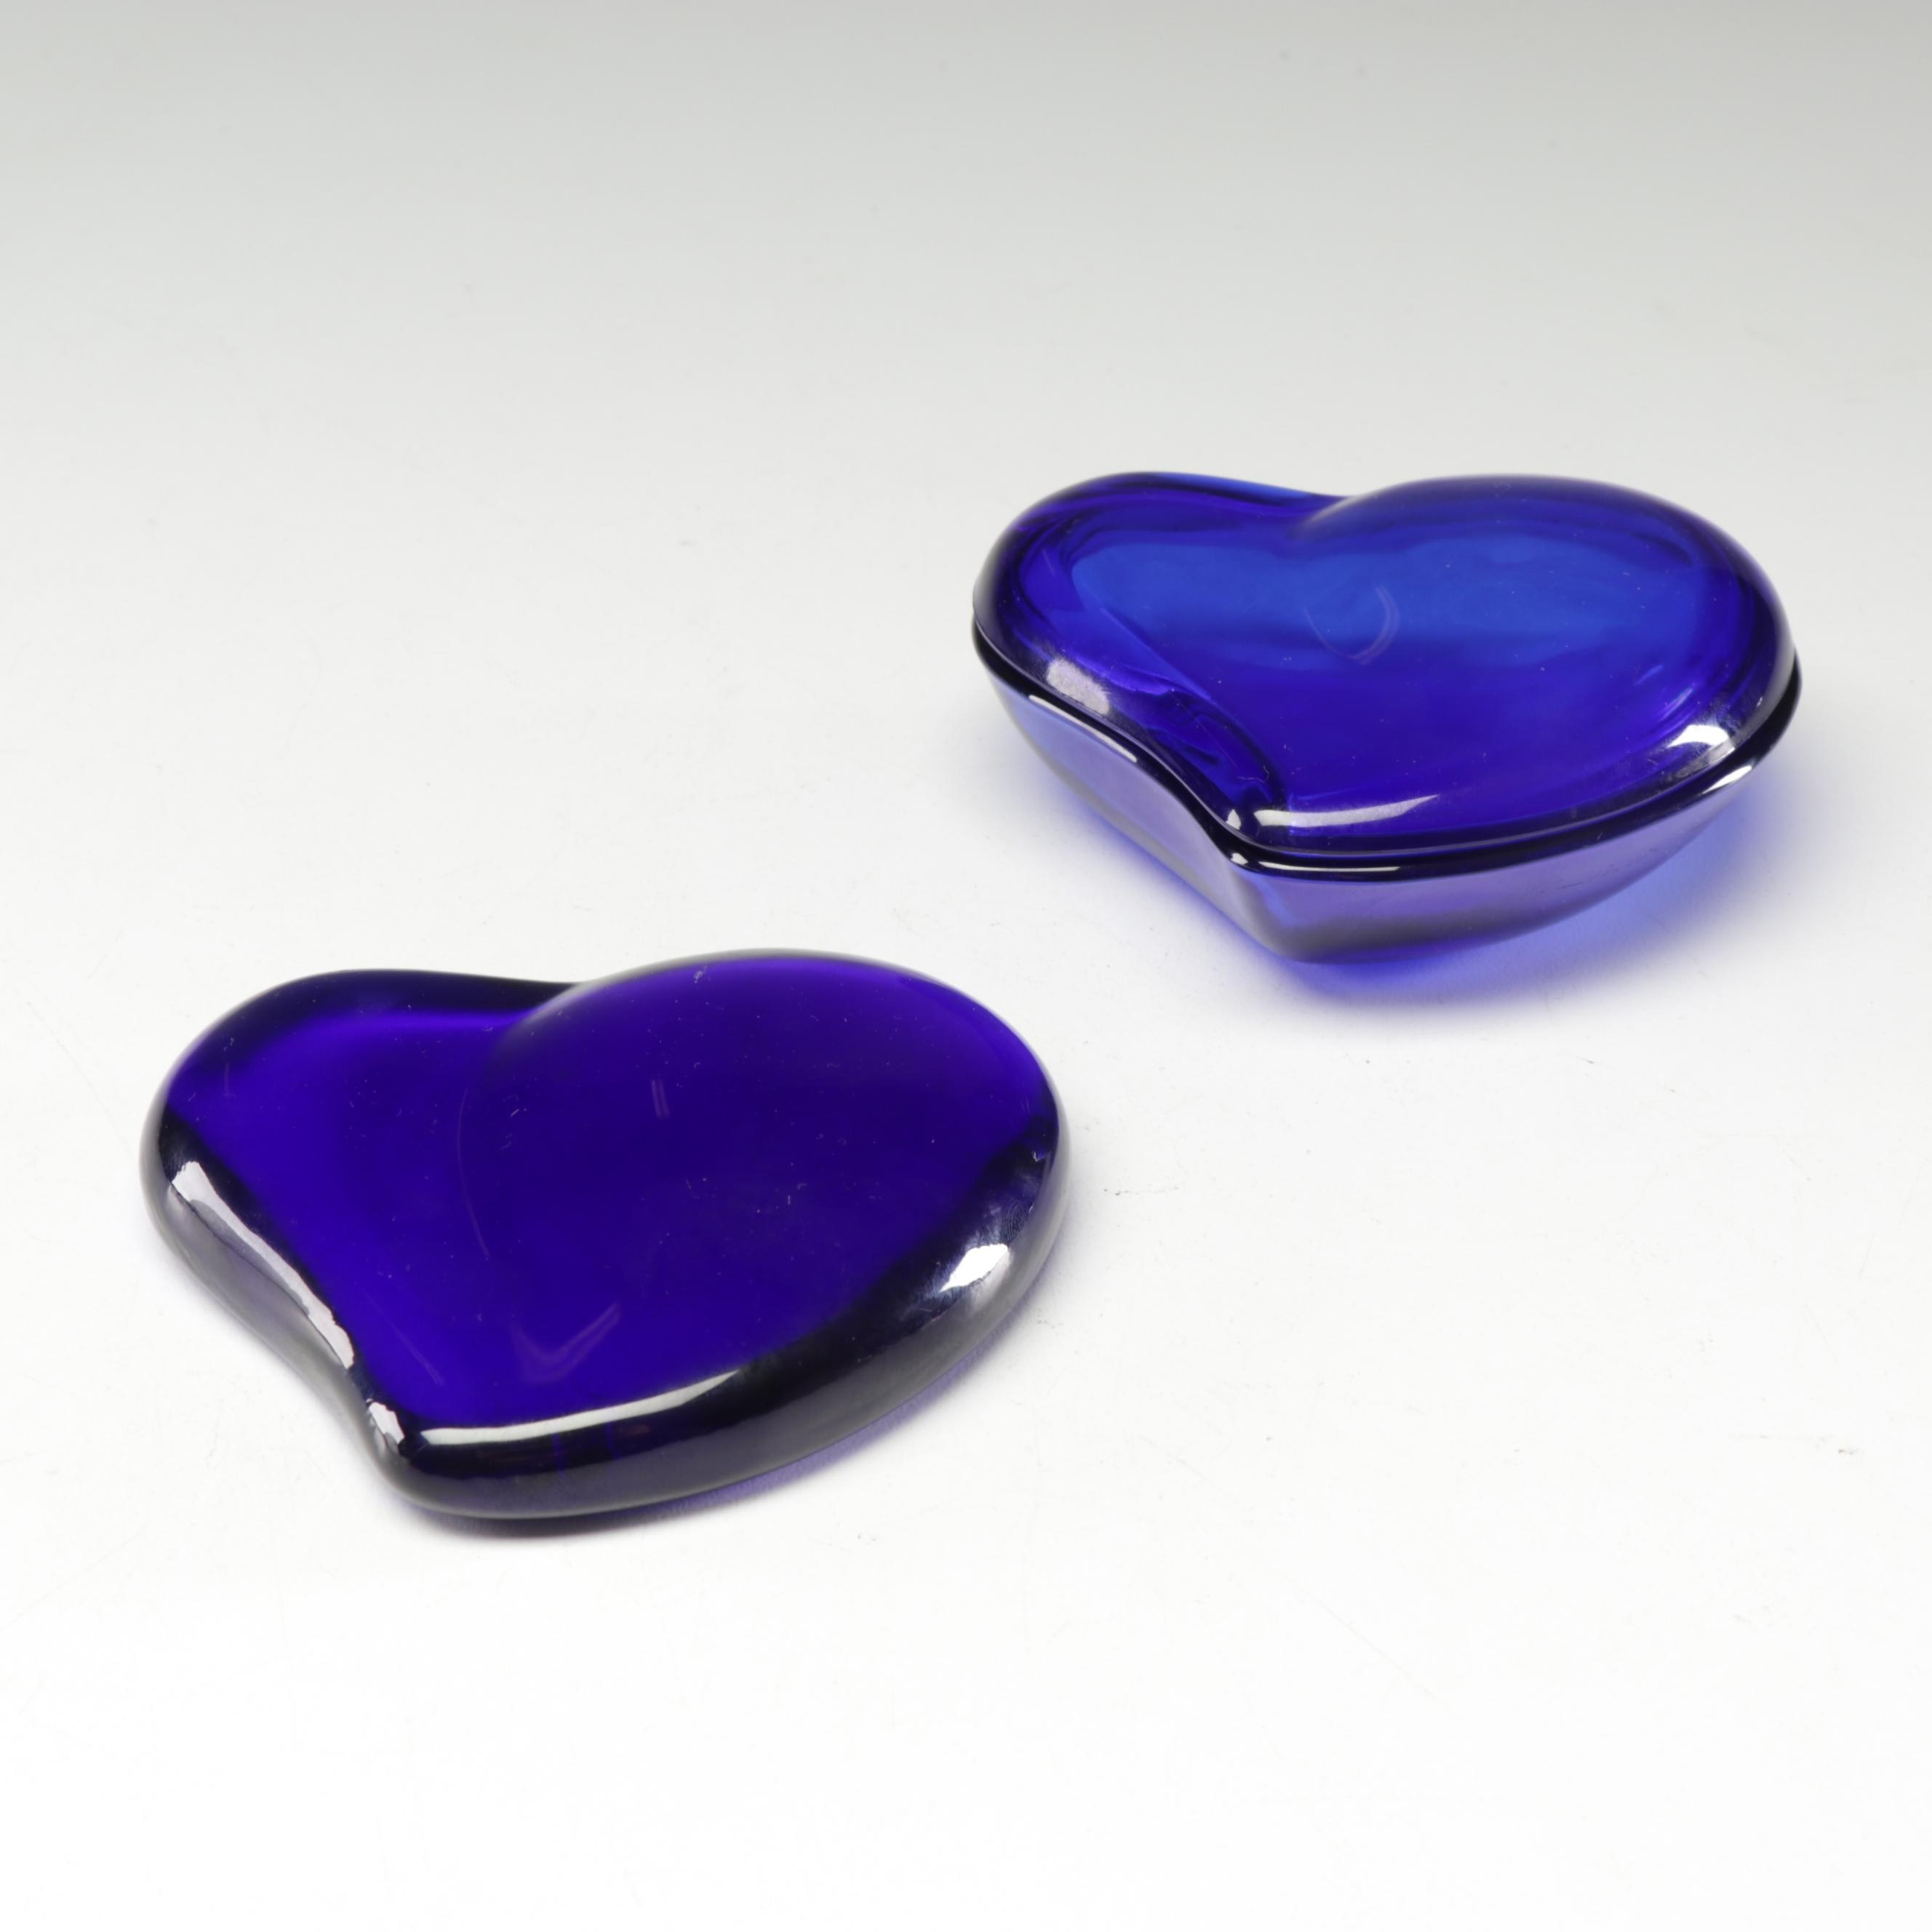 Tiffany & Co. Elsa Peretti Cobalt Blue Glass Heart Paperweight and Box